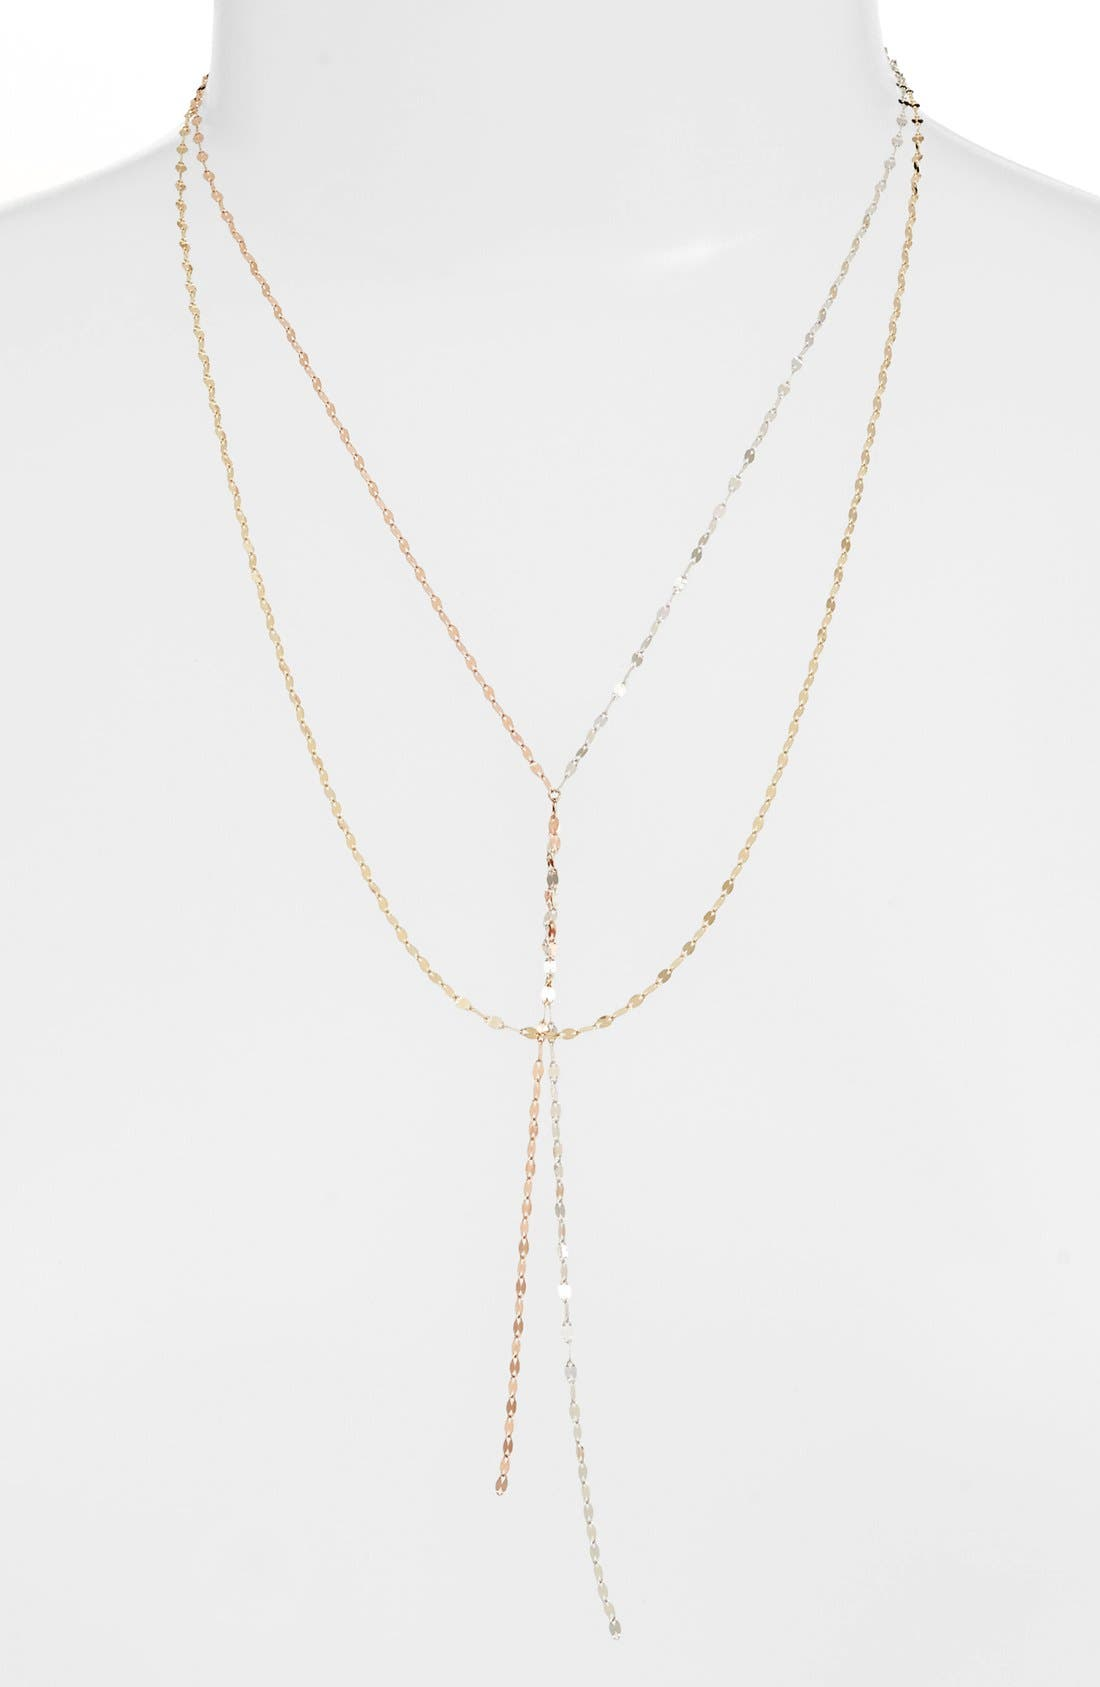 Lana Jewelry 'Blake' Tri Color Lariat Necklace